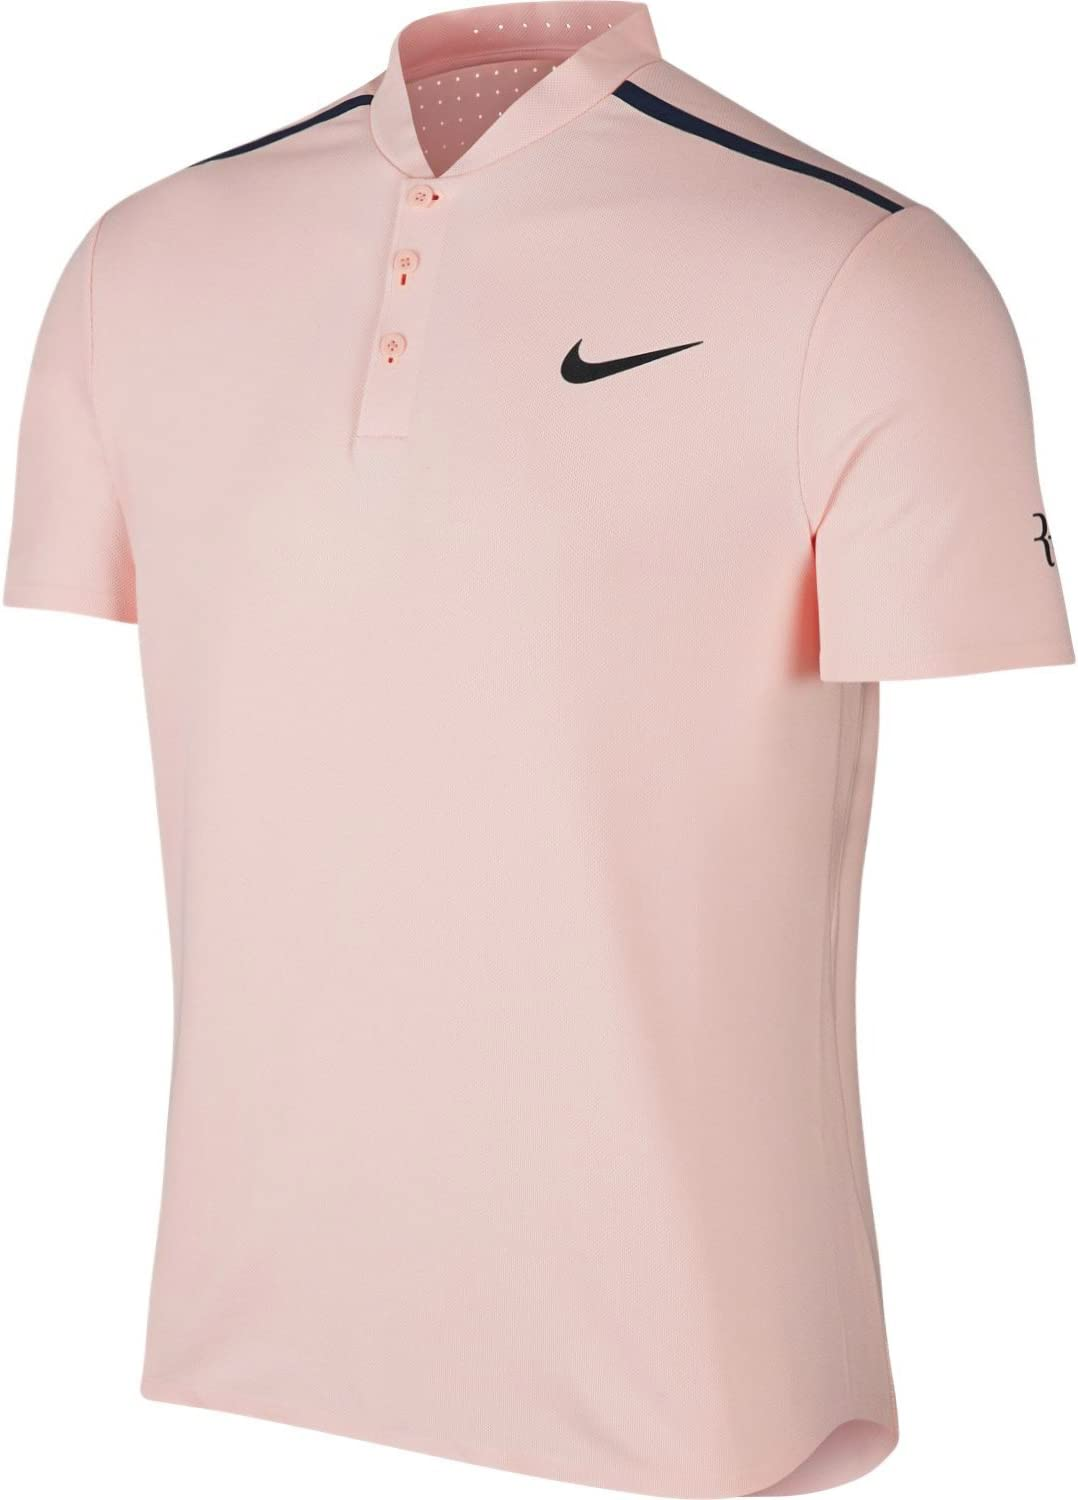 Polo Nike Advantage Federer Automne 2017 - S: Amazon.es: Deportes ...